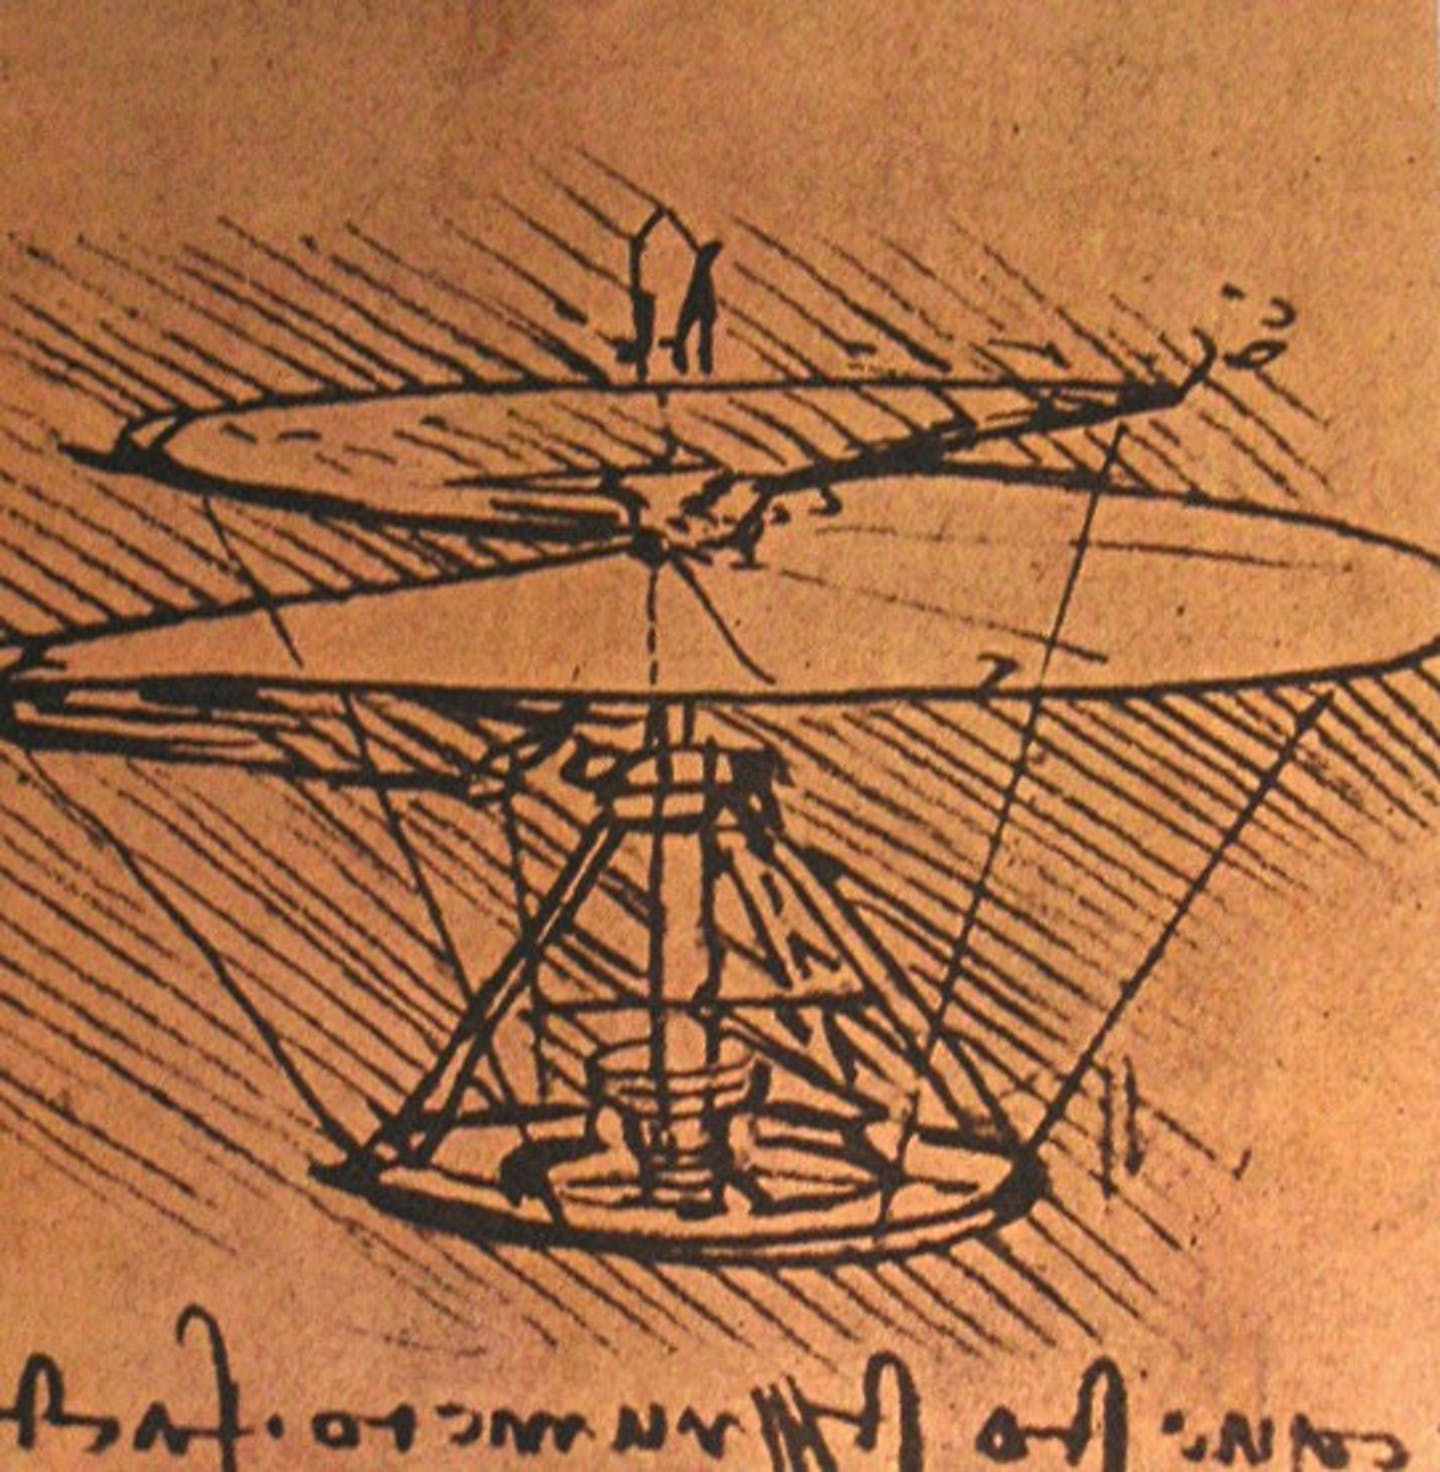 A sketch of a human–powered helicopter with a large spiral propeller on top.